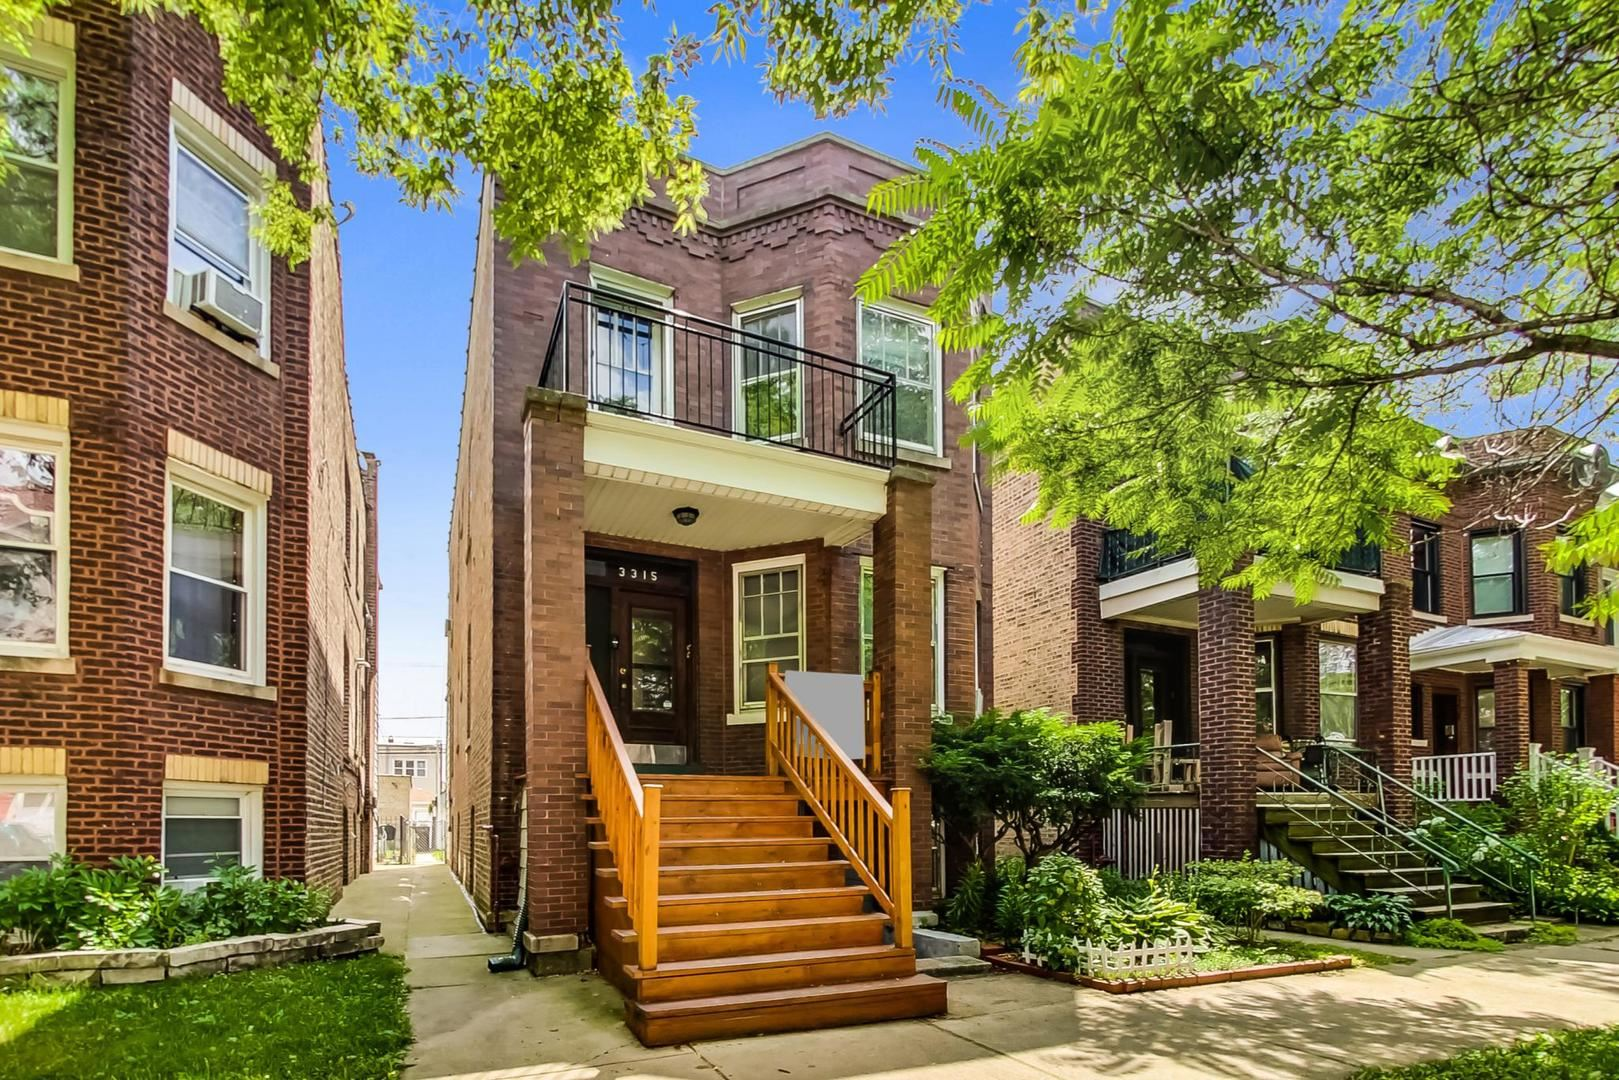 3315 N Monticello Avenue, Chicago, IL 60618 - #: 10766562